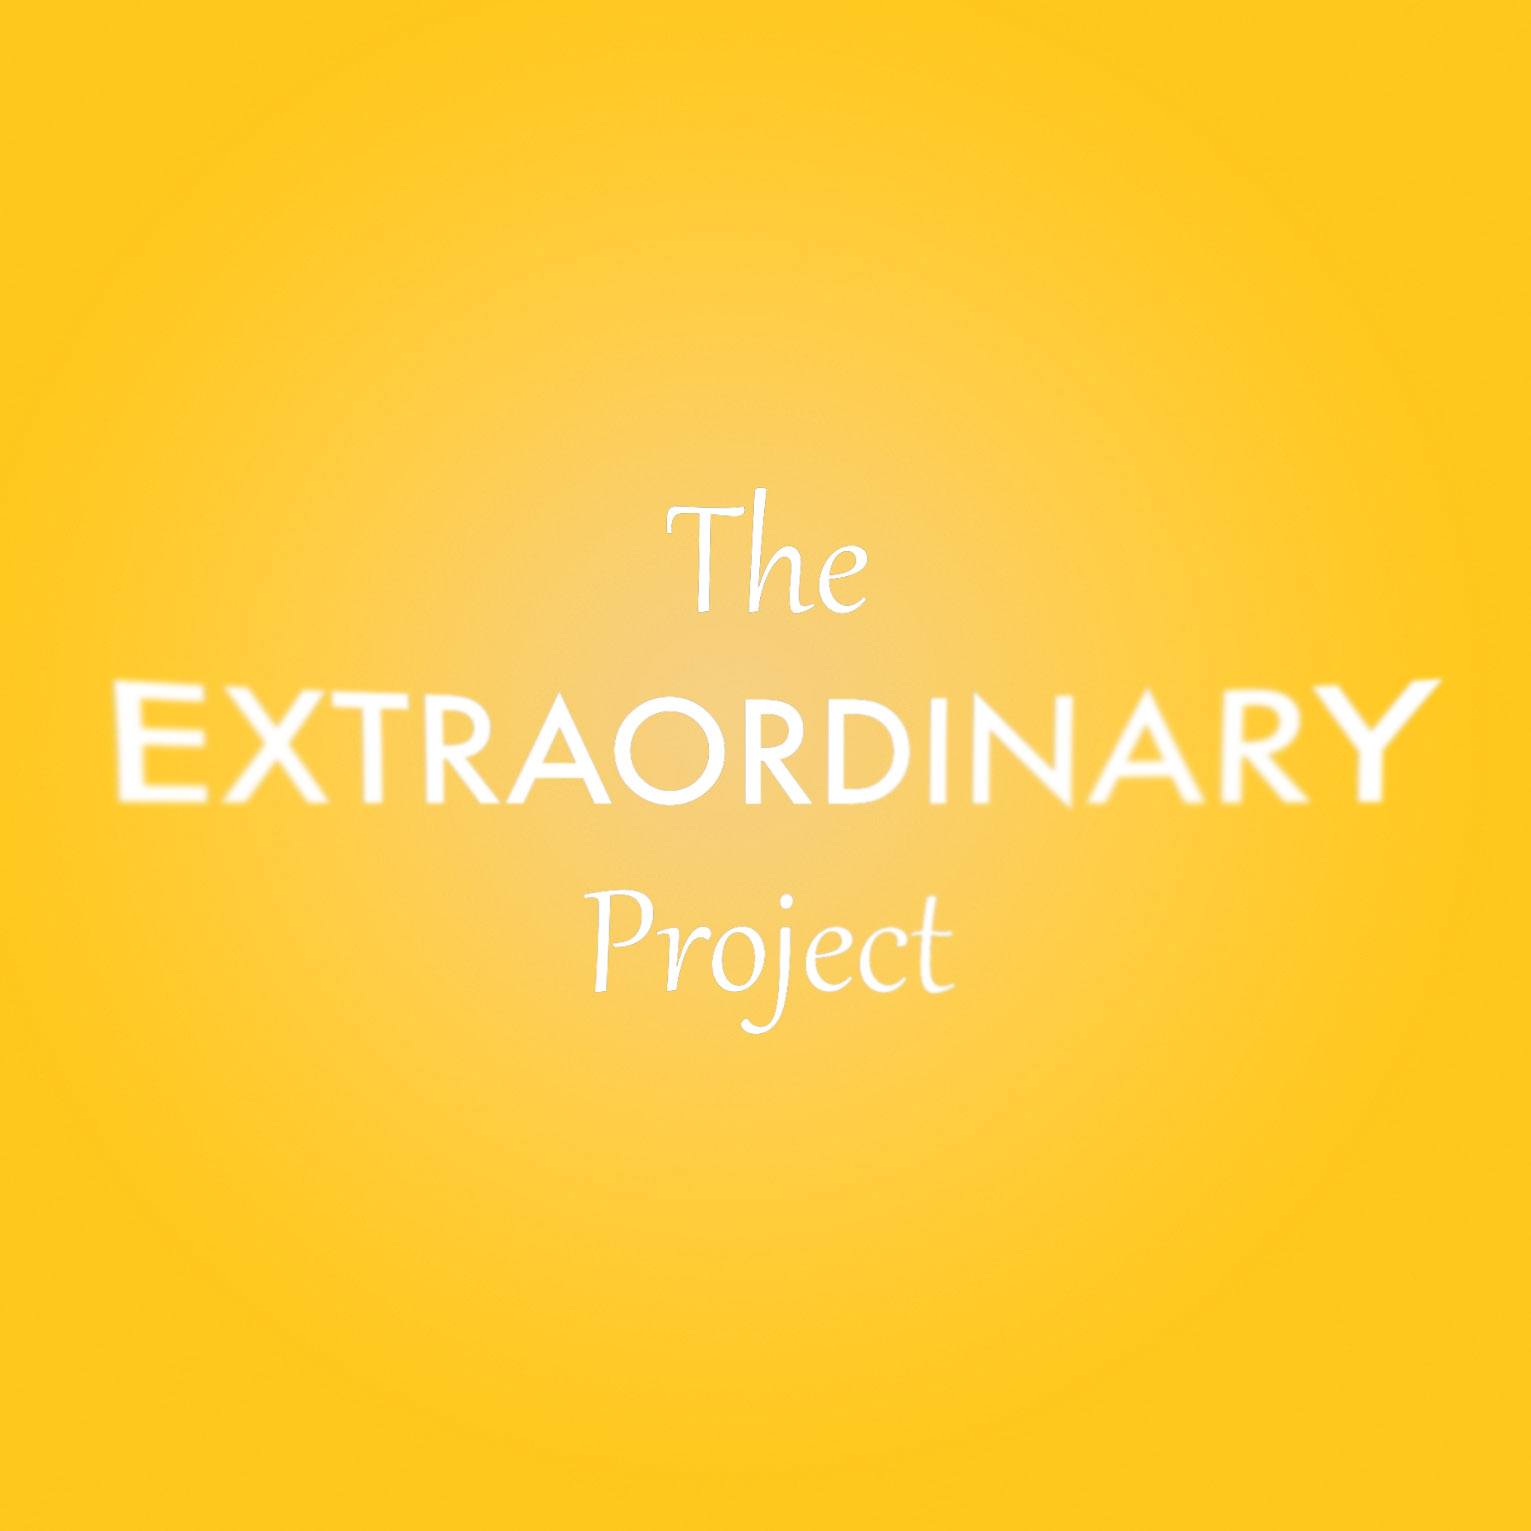 Introduction: The Extraordinary Project